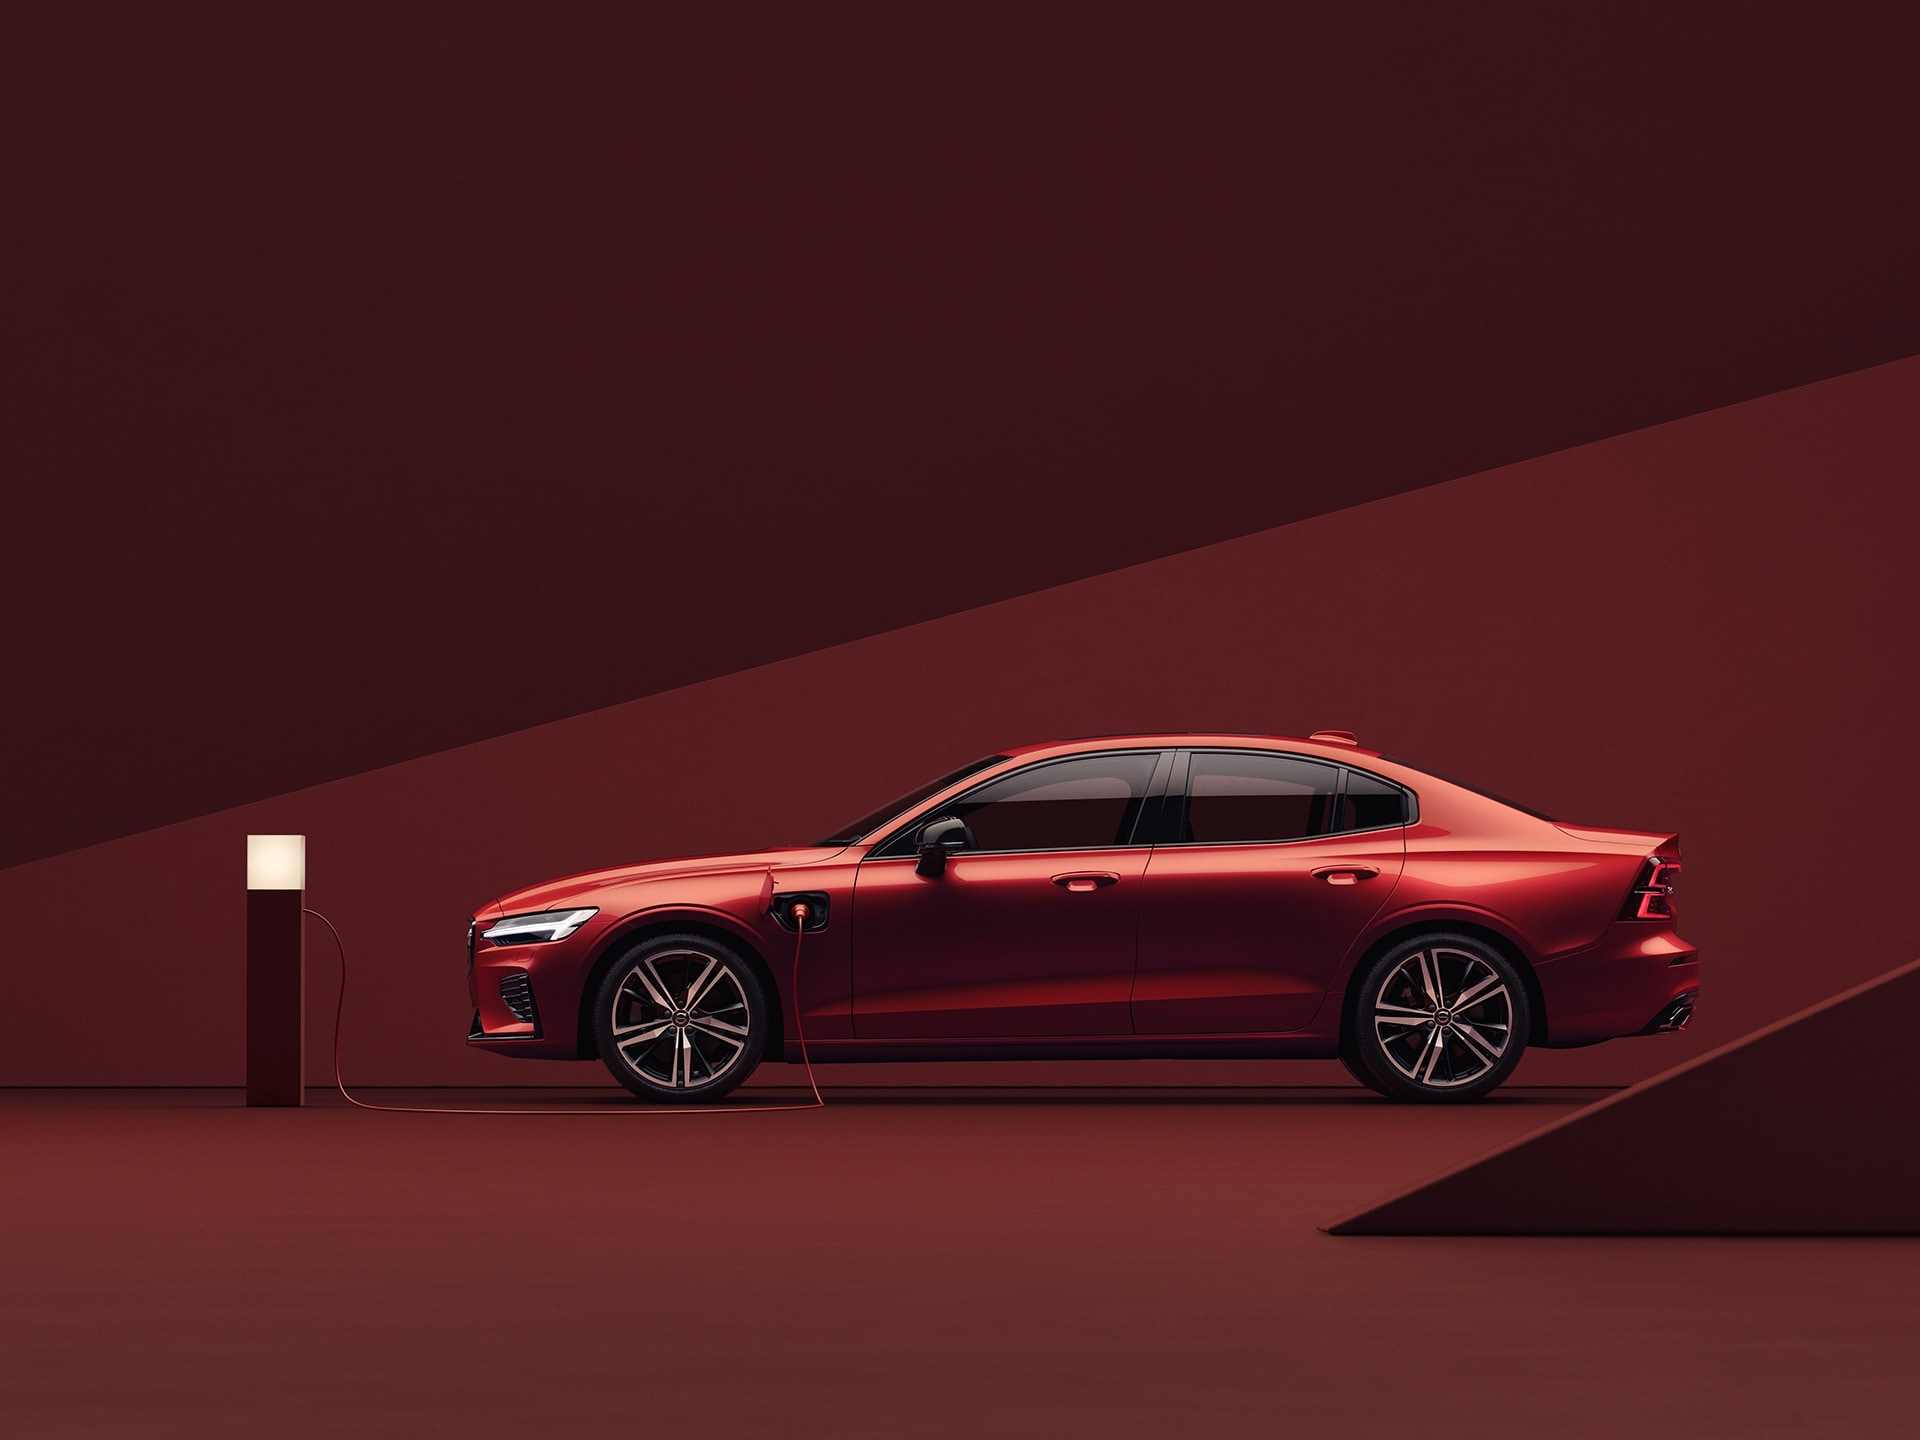 A red Volvo S60 Recharge, charging in a red surrounding